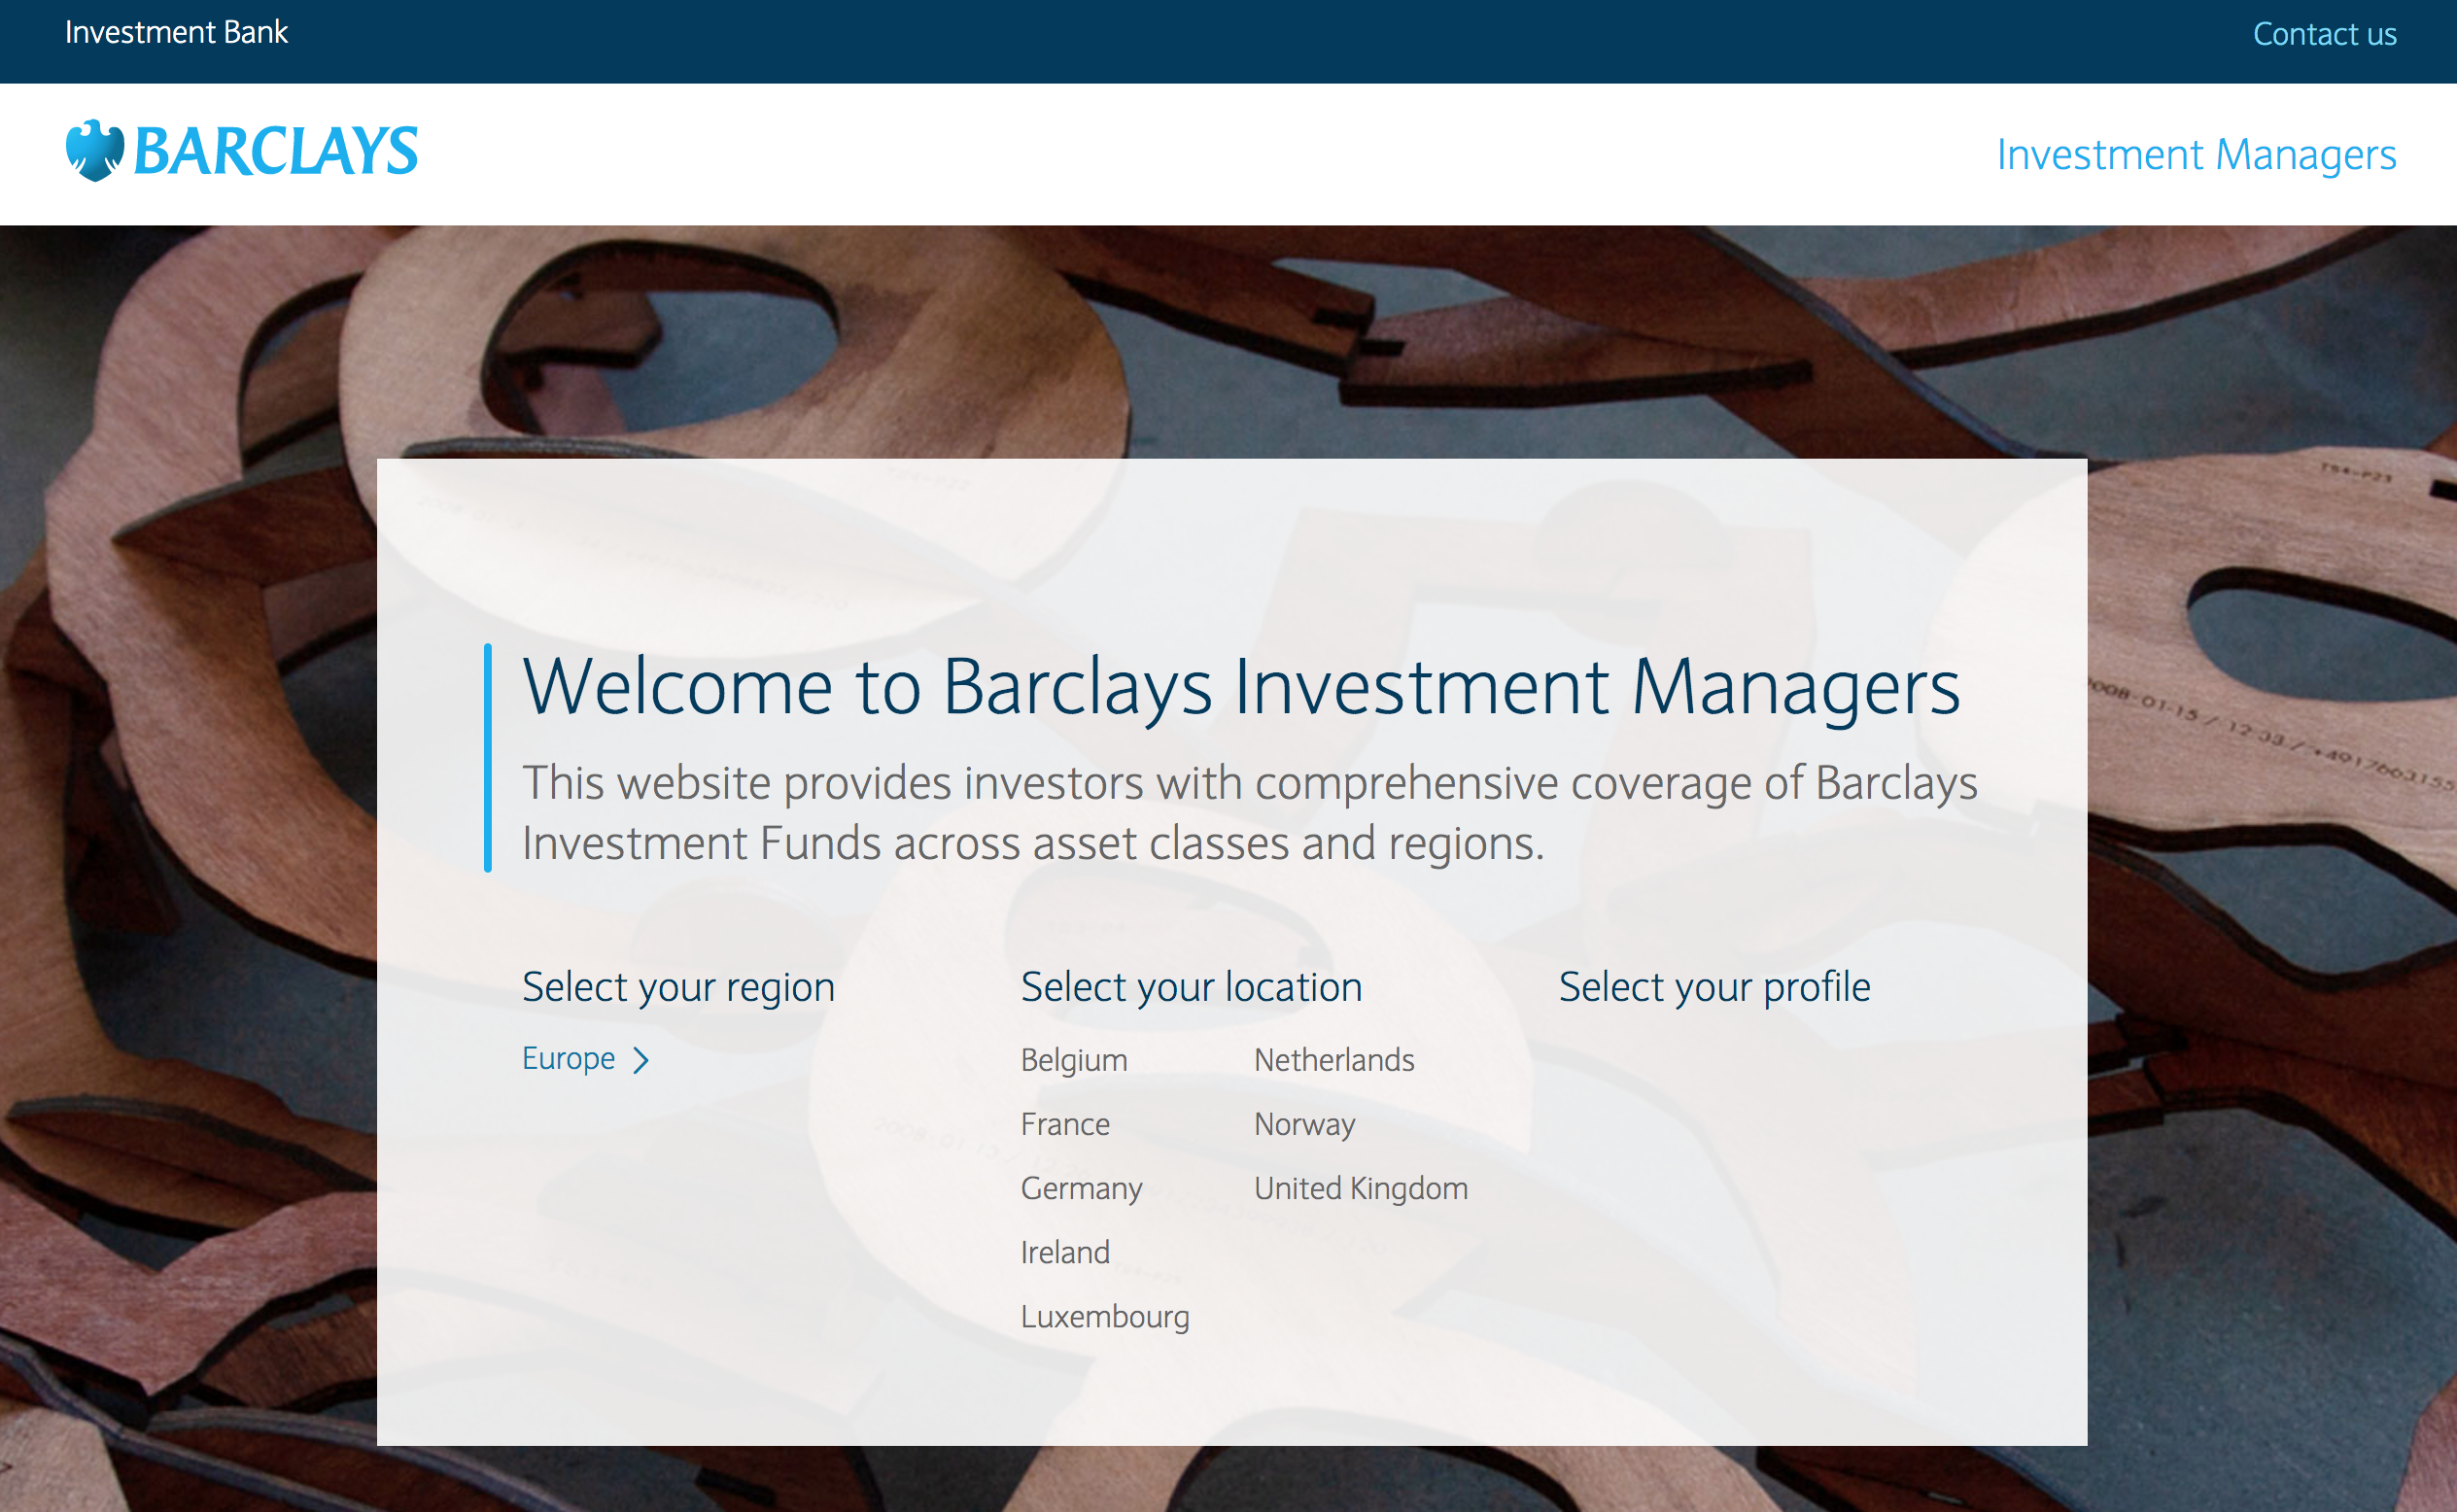 Barclay's site to highlight Barclays Investment Funds across asset classes and regions